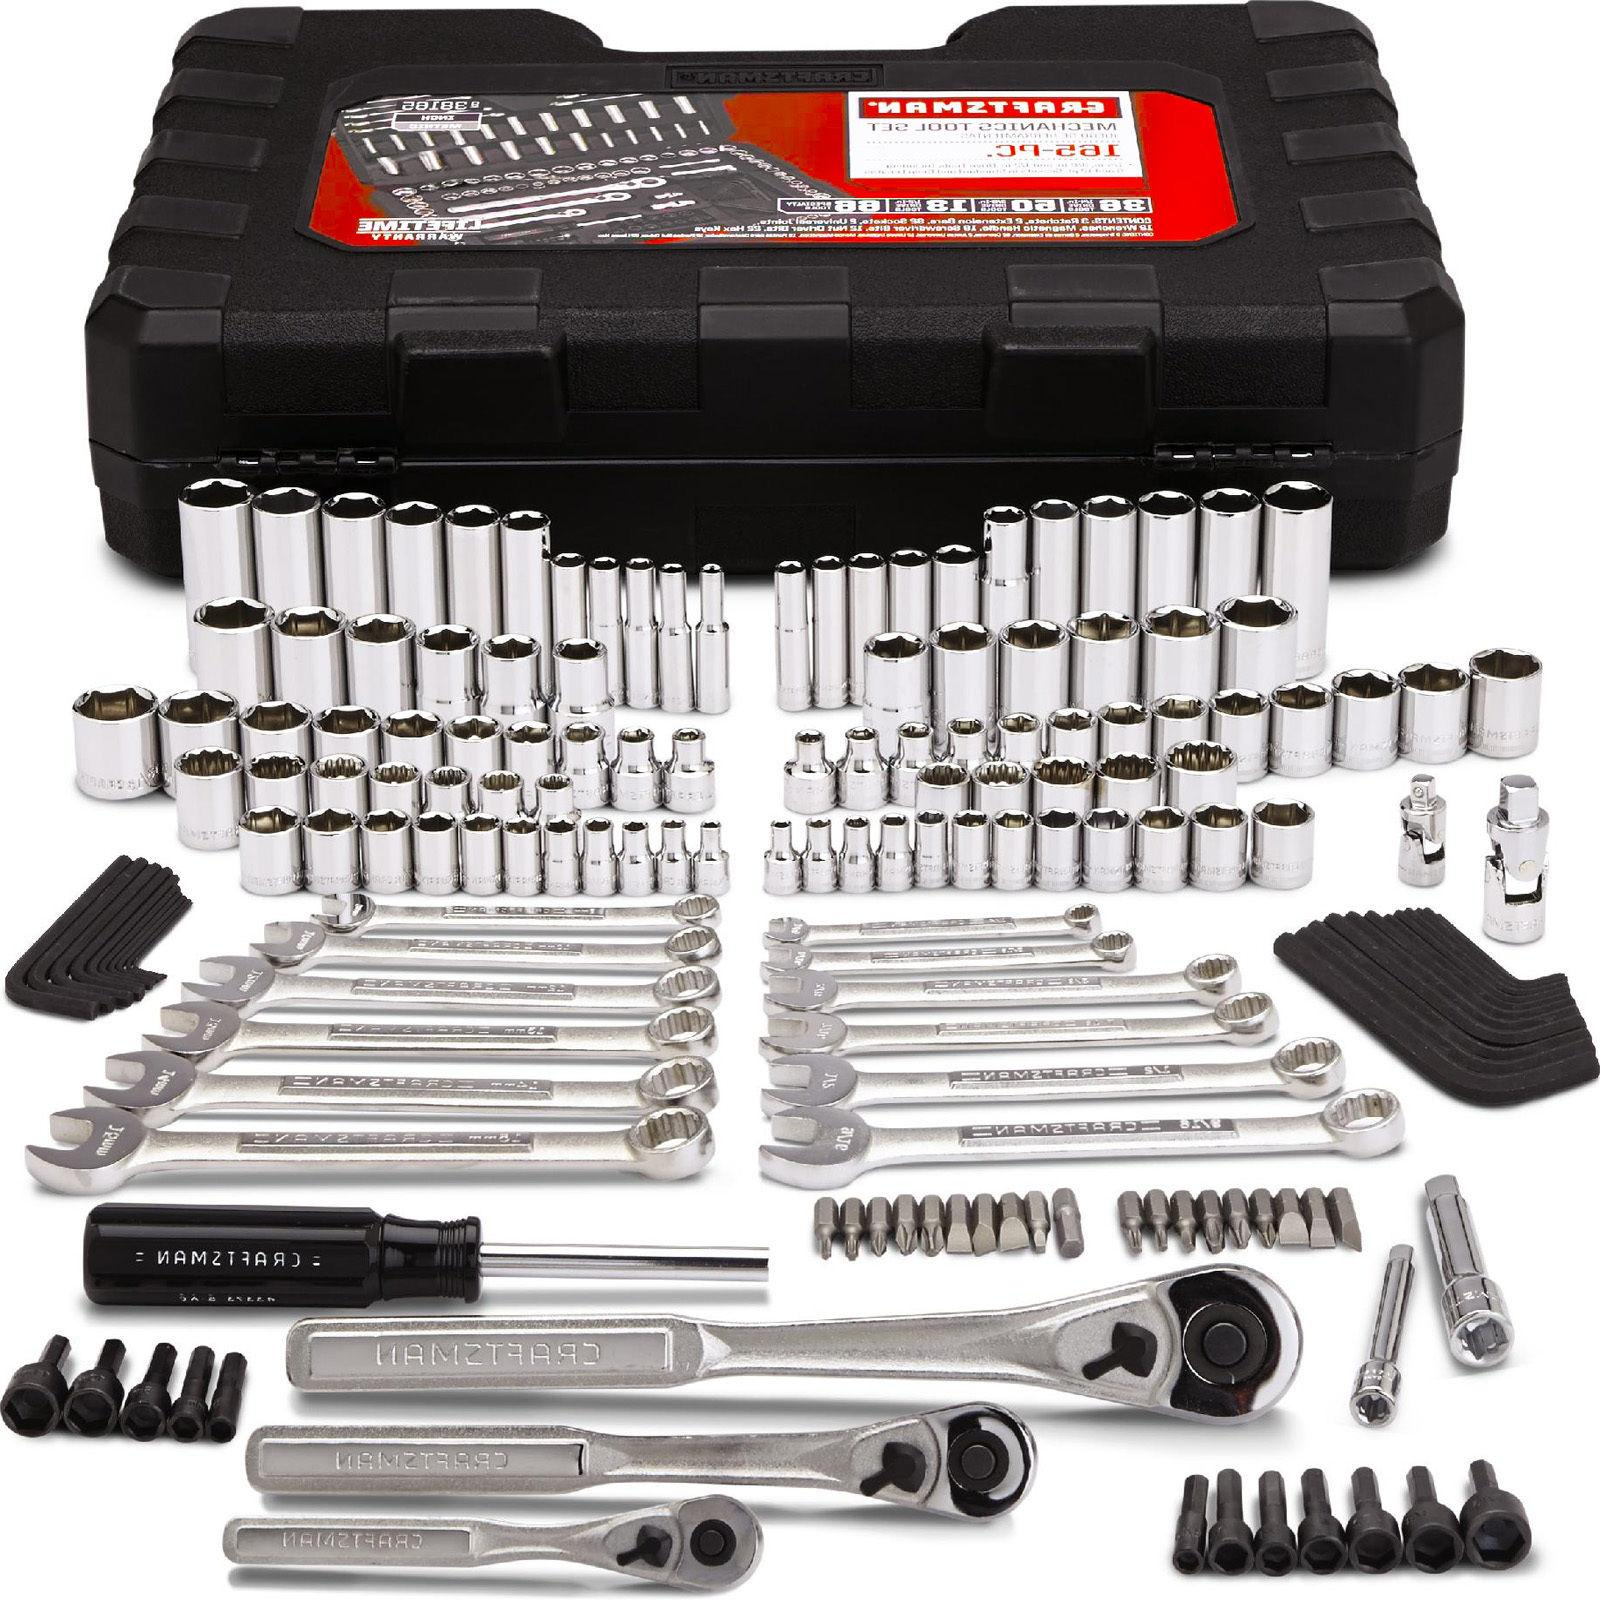 Craftsman 165 pc Mechanics Tool Kit Wrench Socket